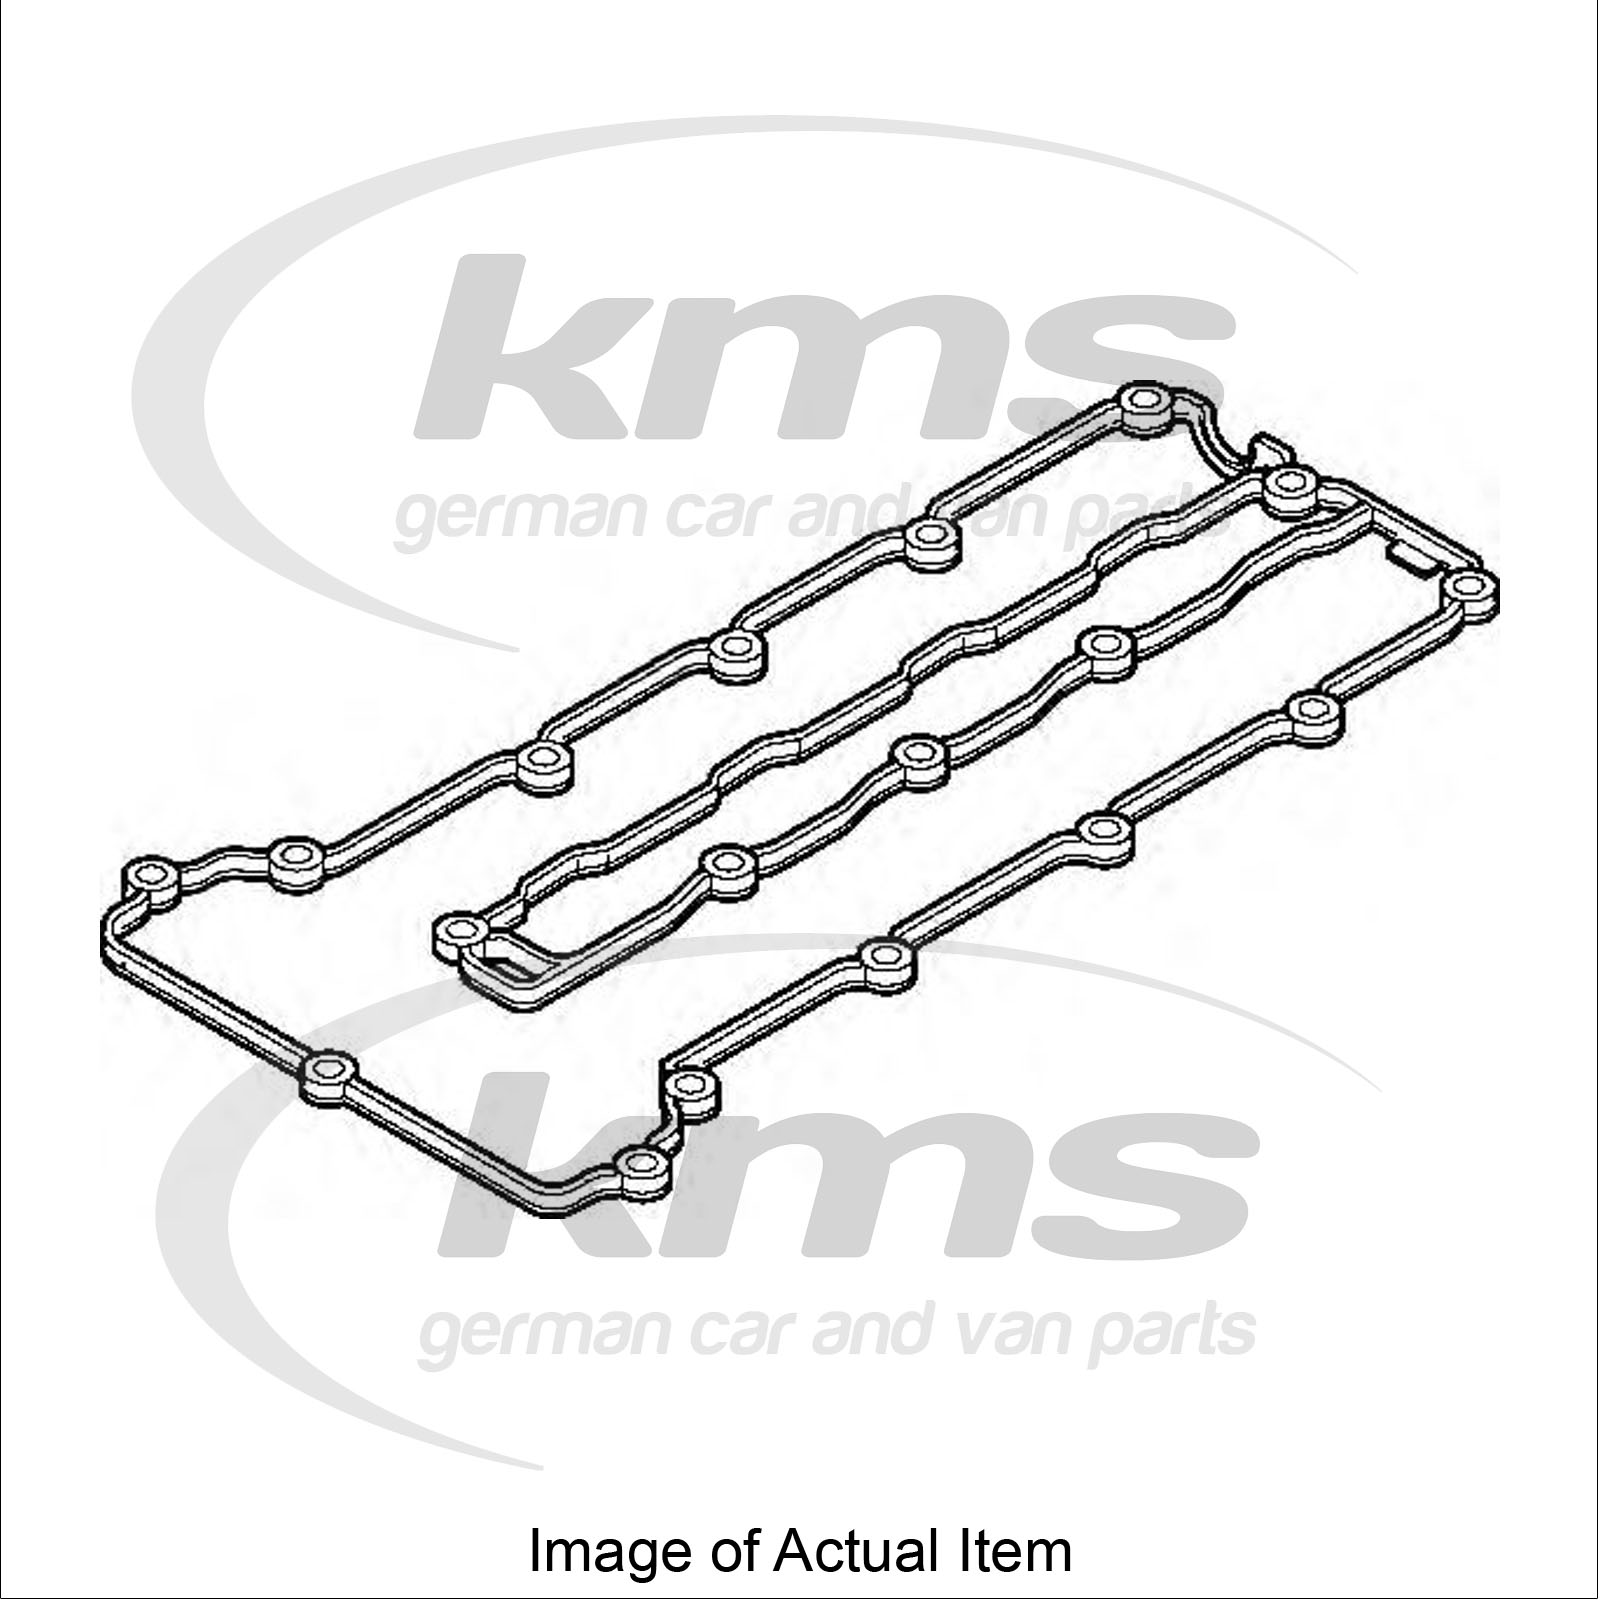 Valve Cover Gasket Mercedes C Class W204 C 180 Cdi 204 000 Saloon 120 Bhp To